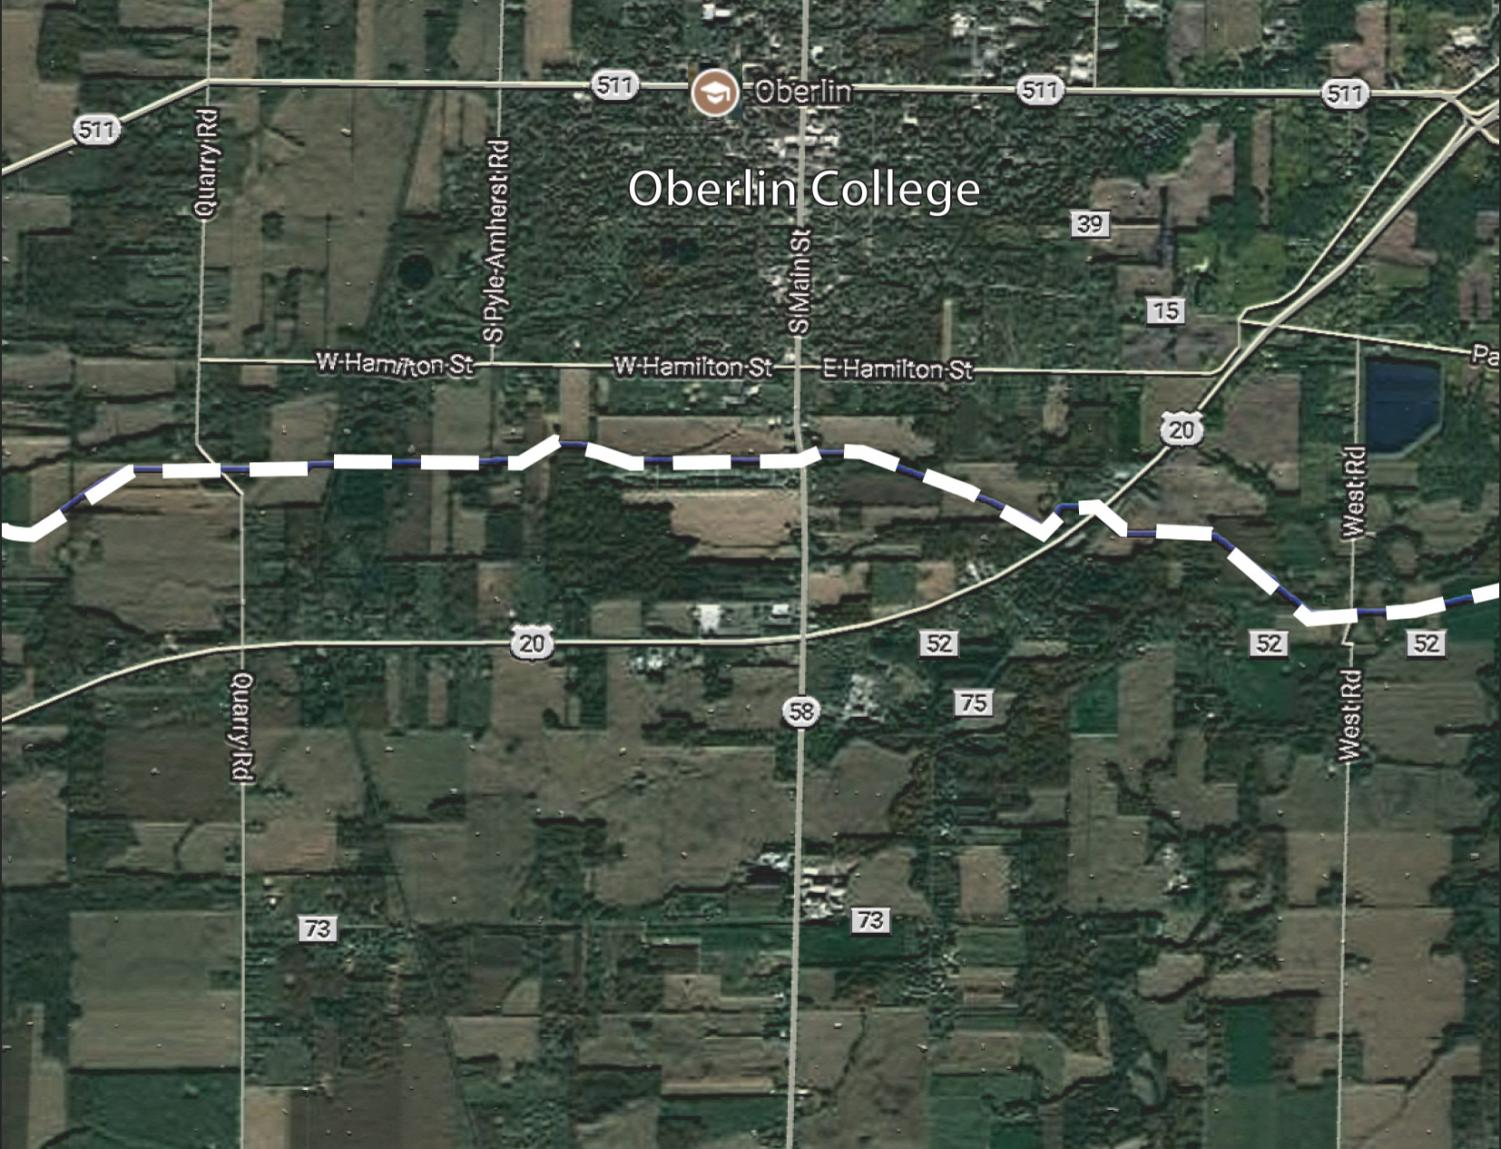 The NEXUS pipeline, which was recently approved for construction by the Federal Energy Regulatory Commission, will be running through the southernmost part of Oberlin.